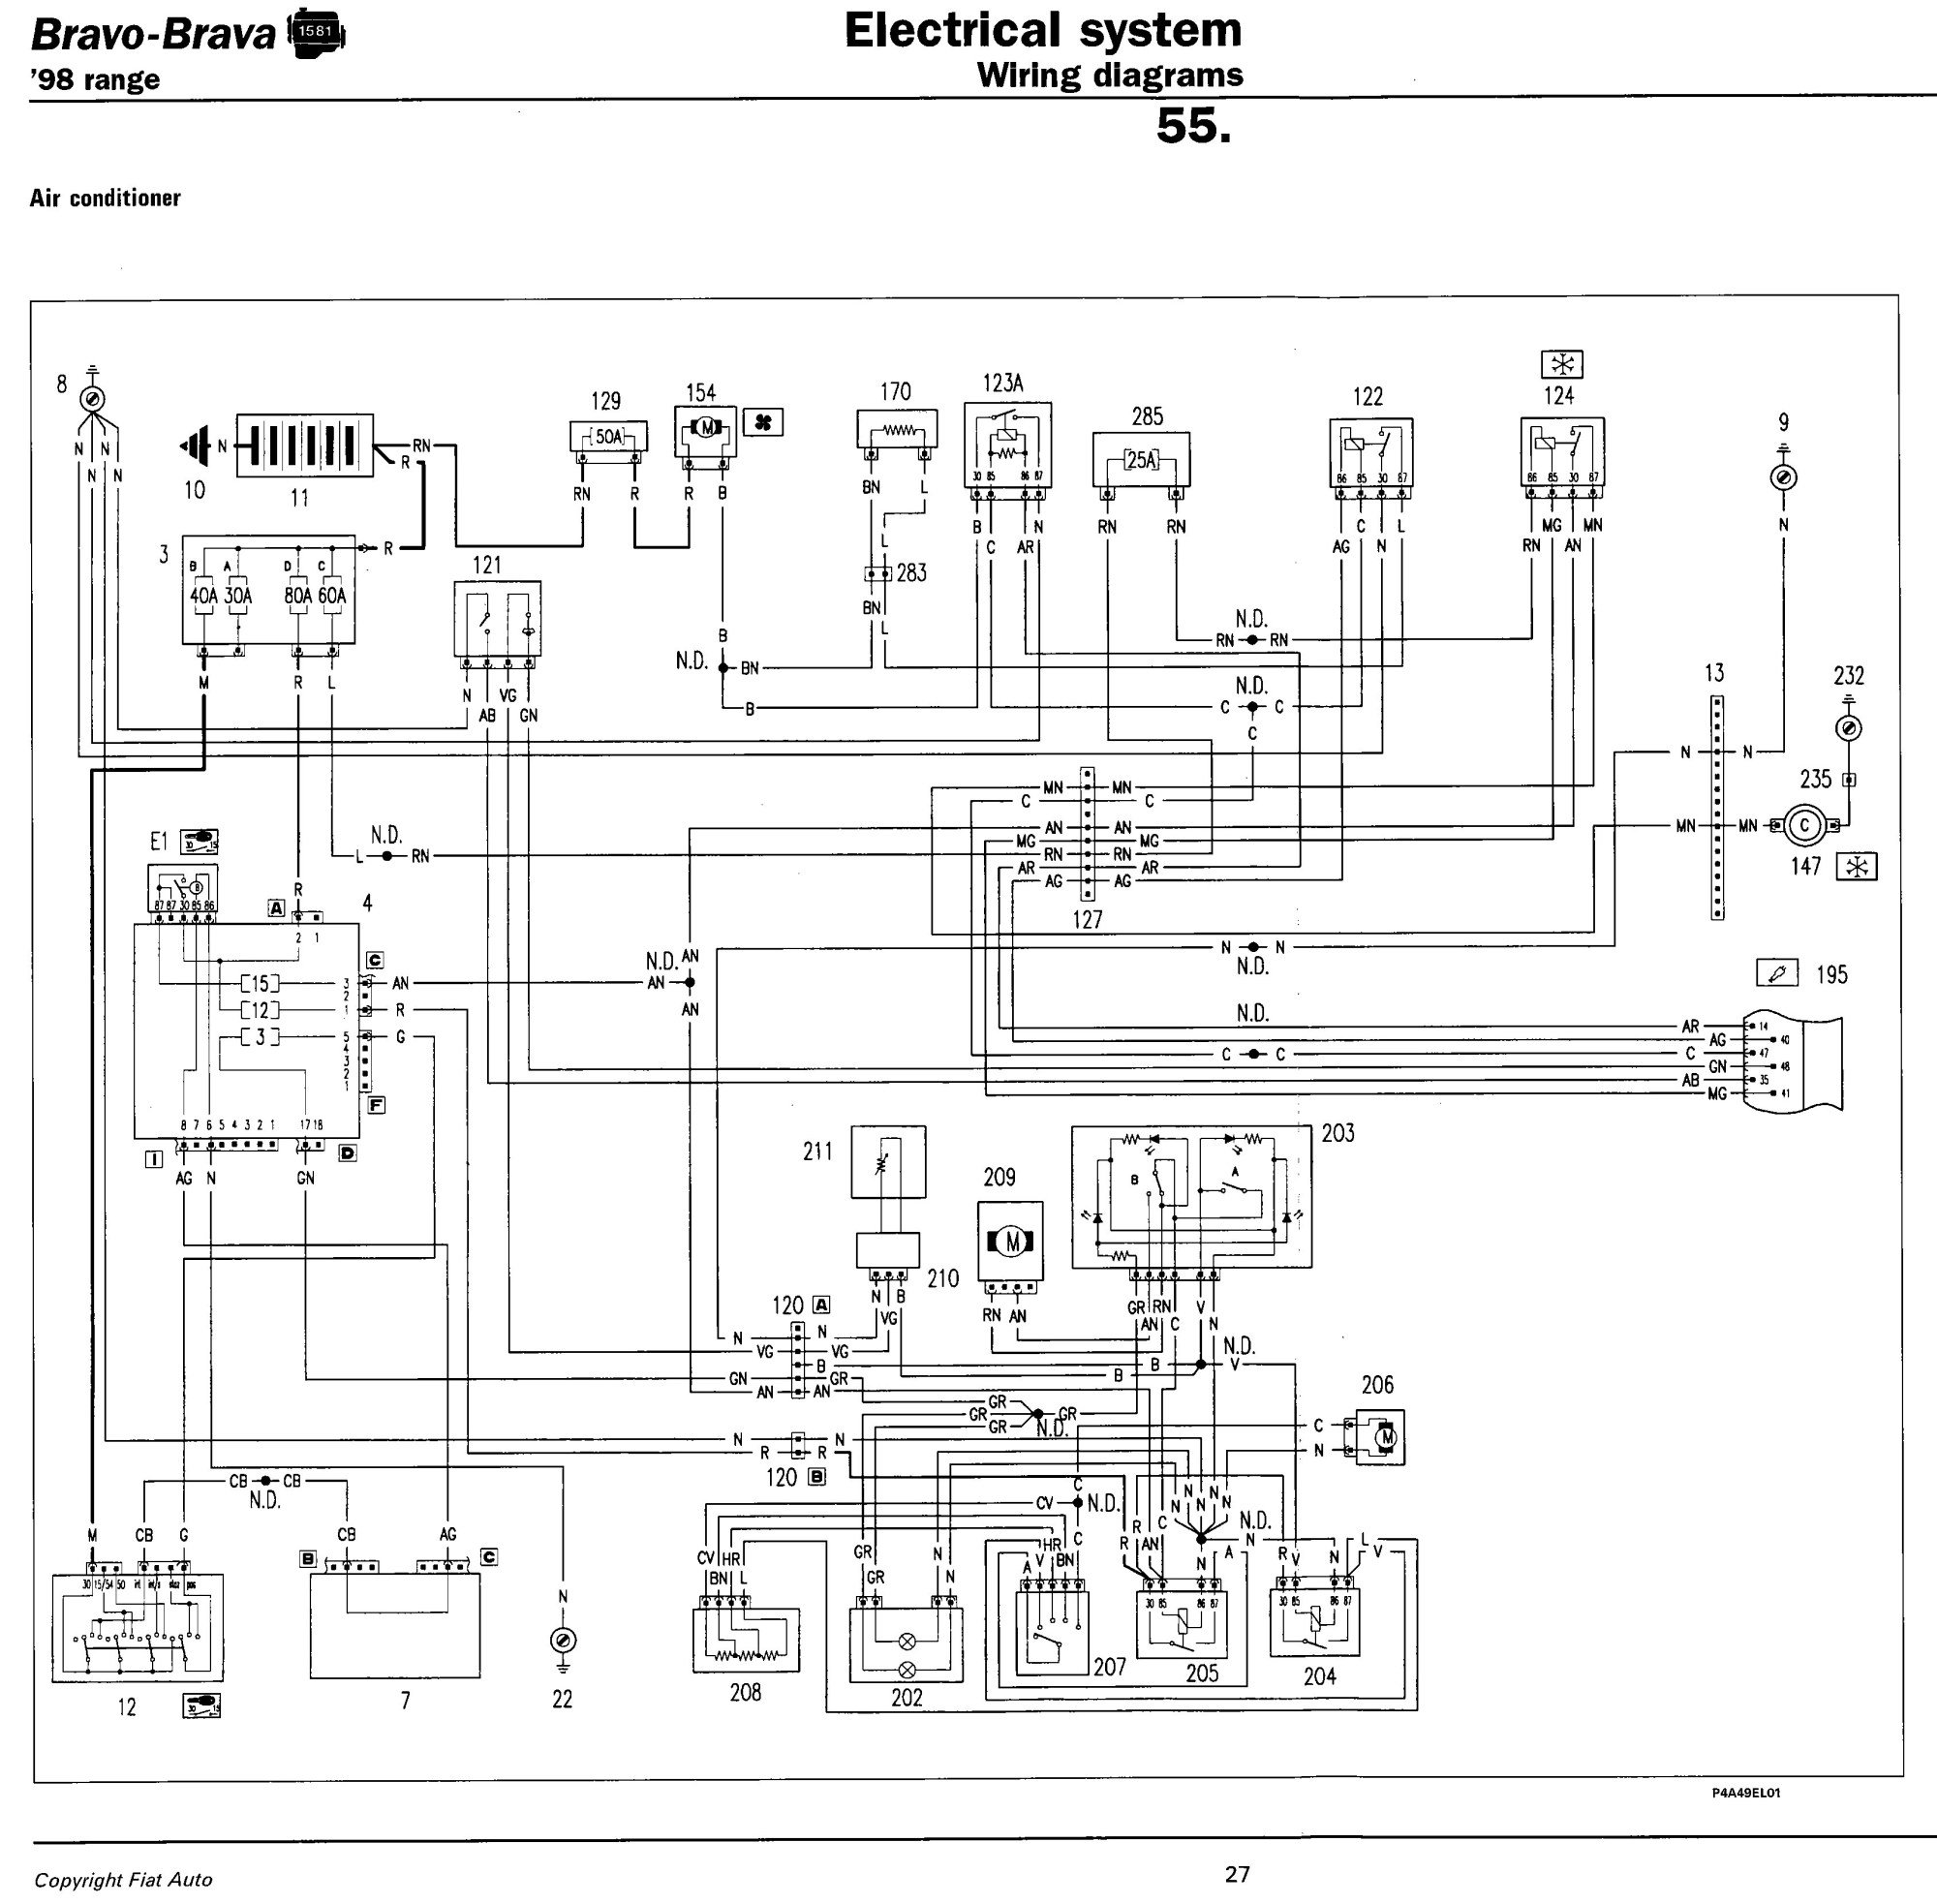 hight resolution of fiat punto electrical wiring diagram wiring librarywiring diagram for fiat 128 sedan content resource of wiring